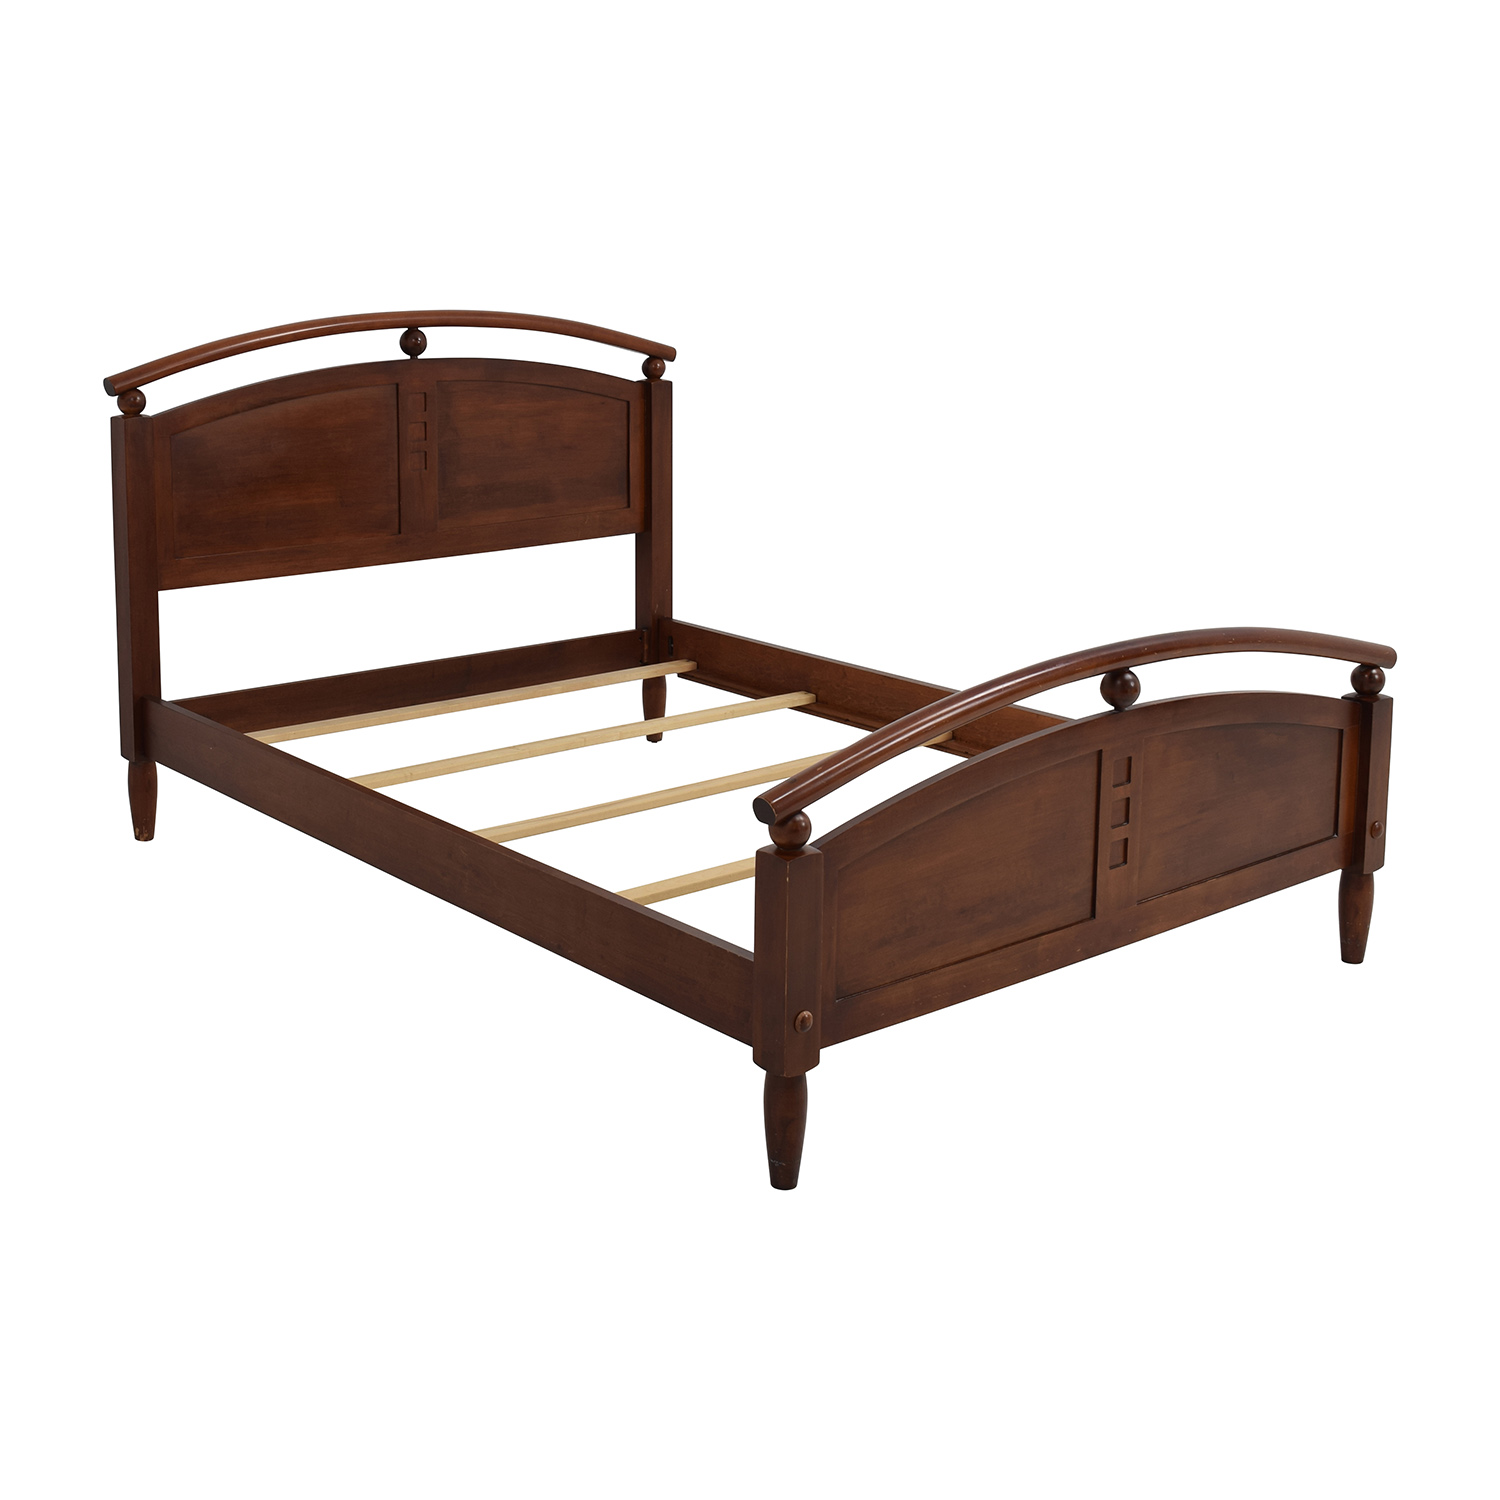 88 off ethan allen ethan allen full wooden bed frame beds for Second hand bunk beds